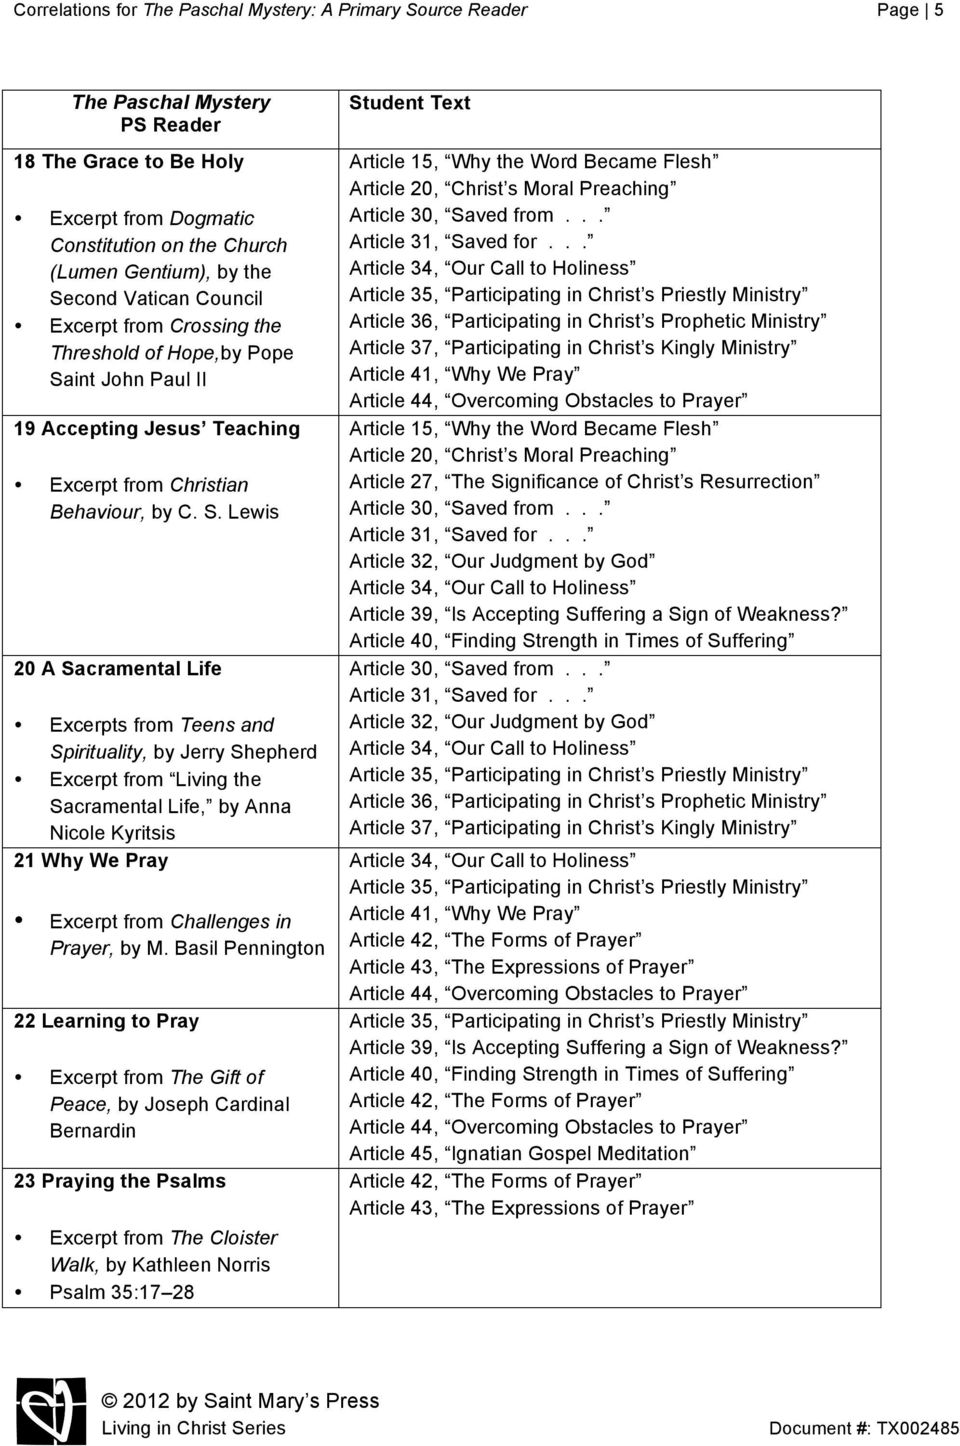 Correlations for The Paschal Mystery: A Primary Source